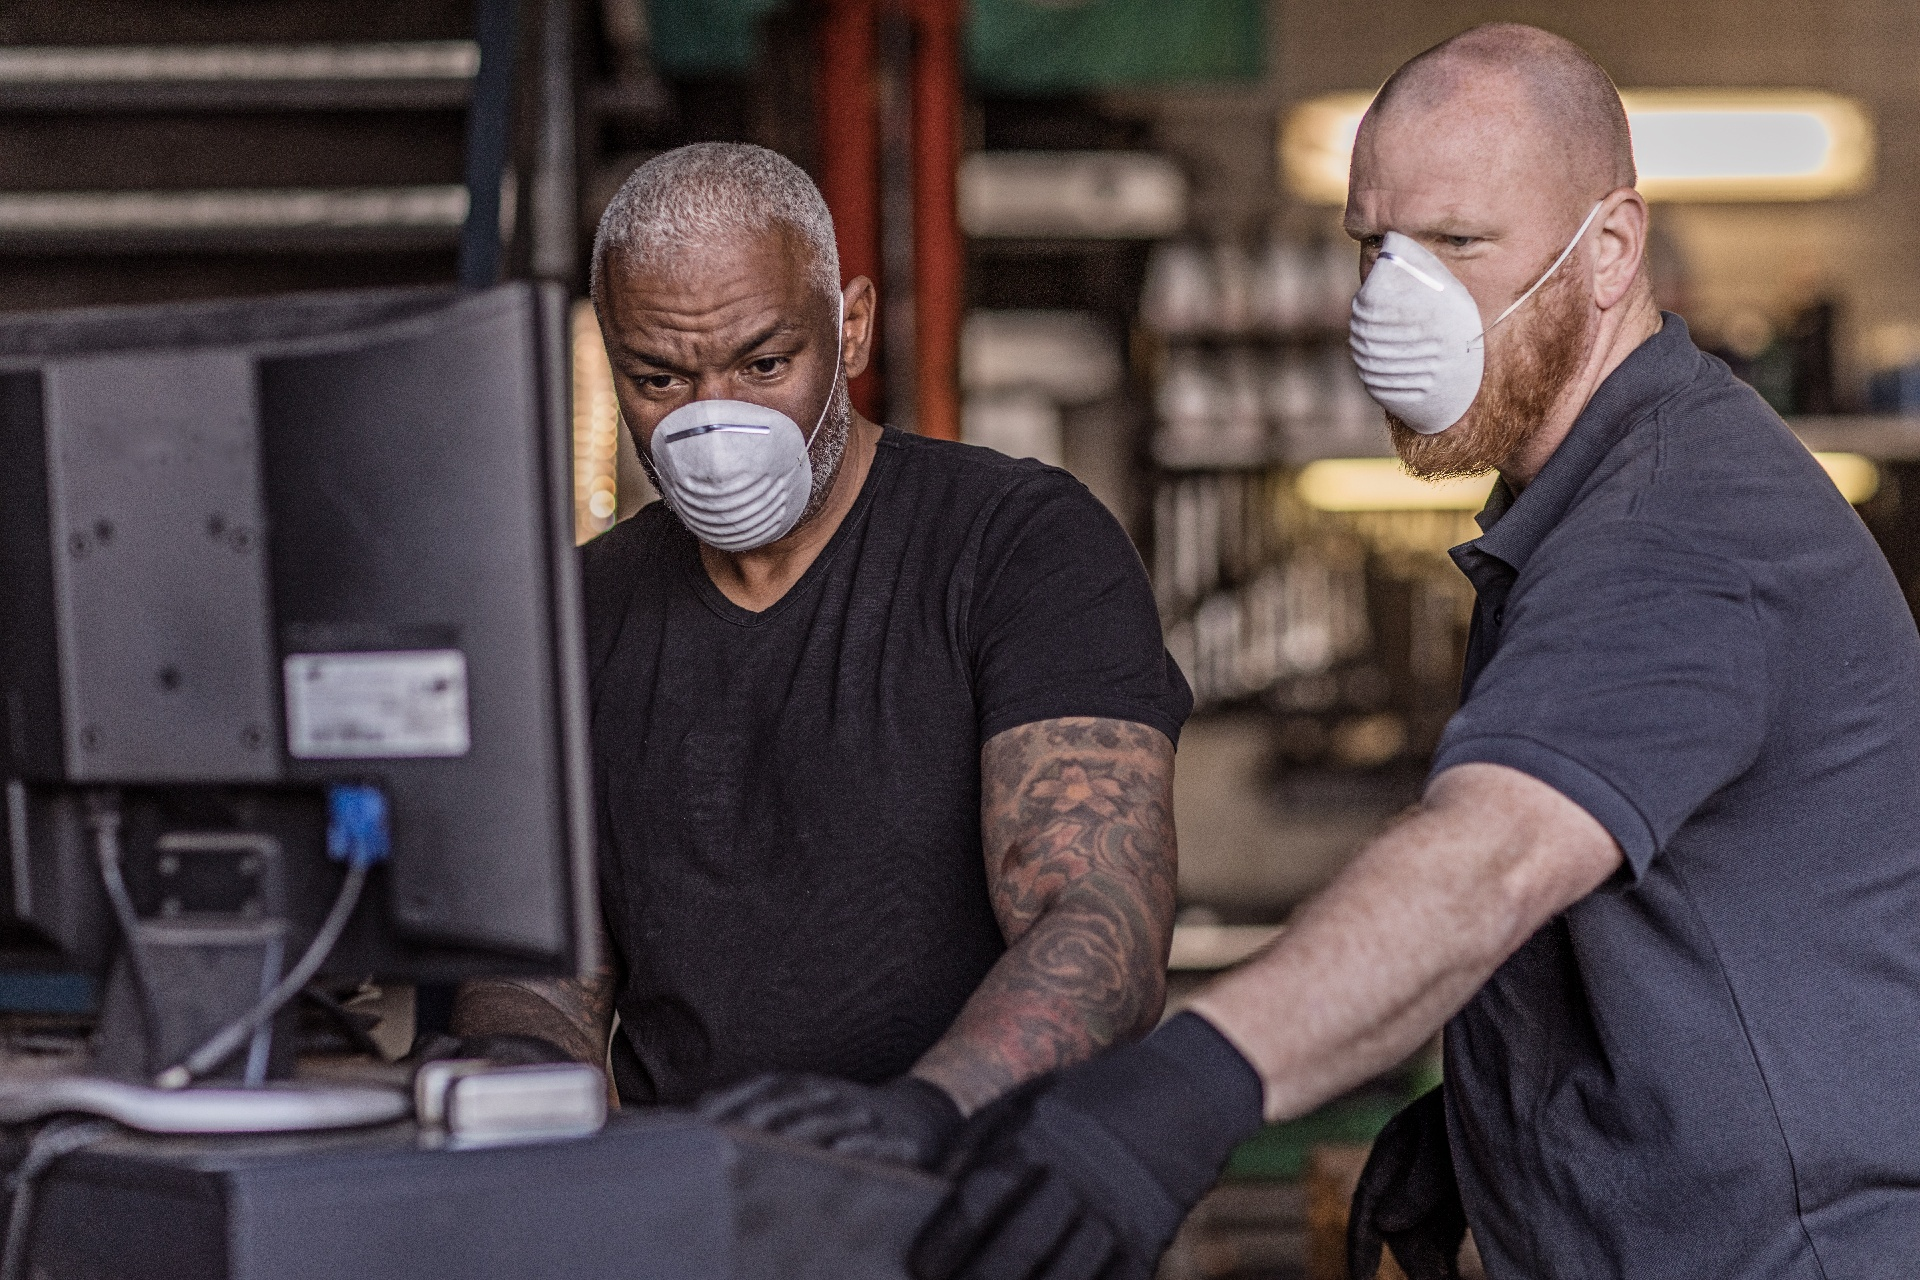 Two essential employees wearing masks at work